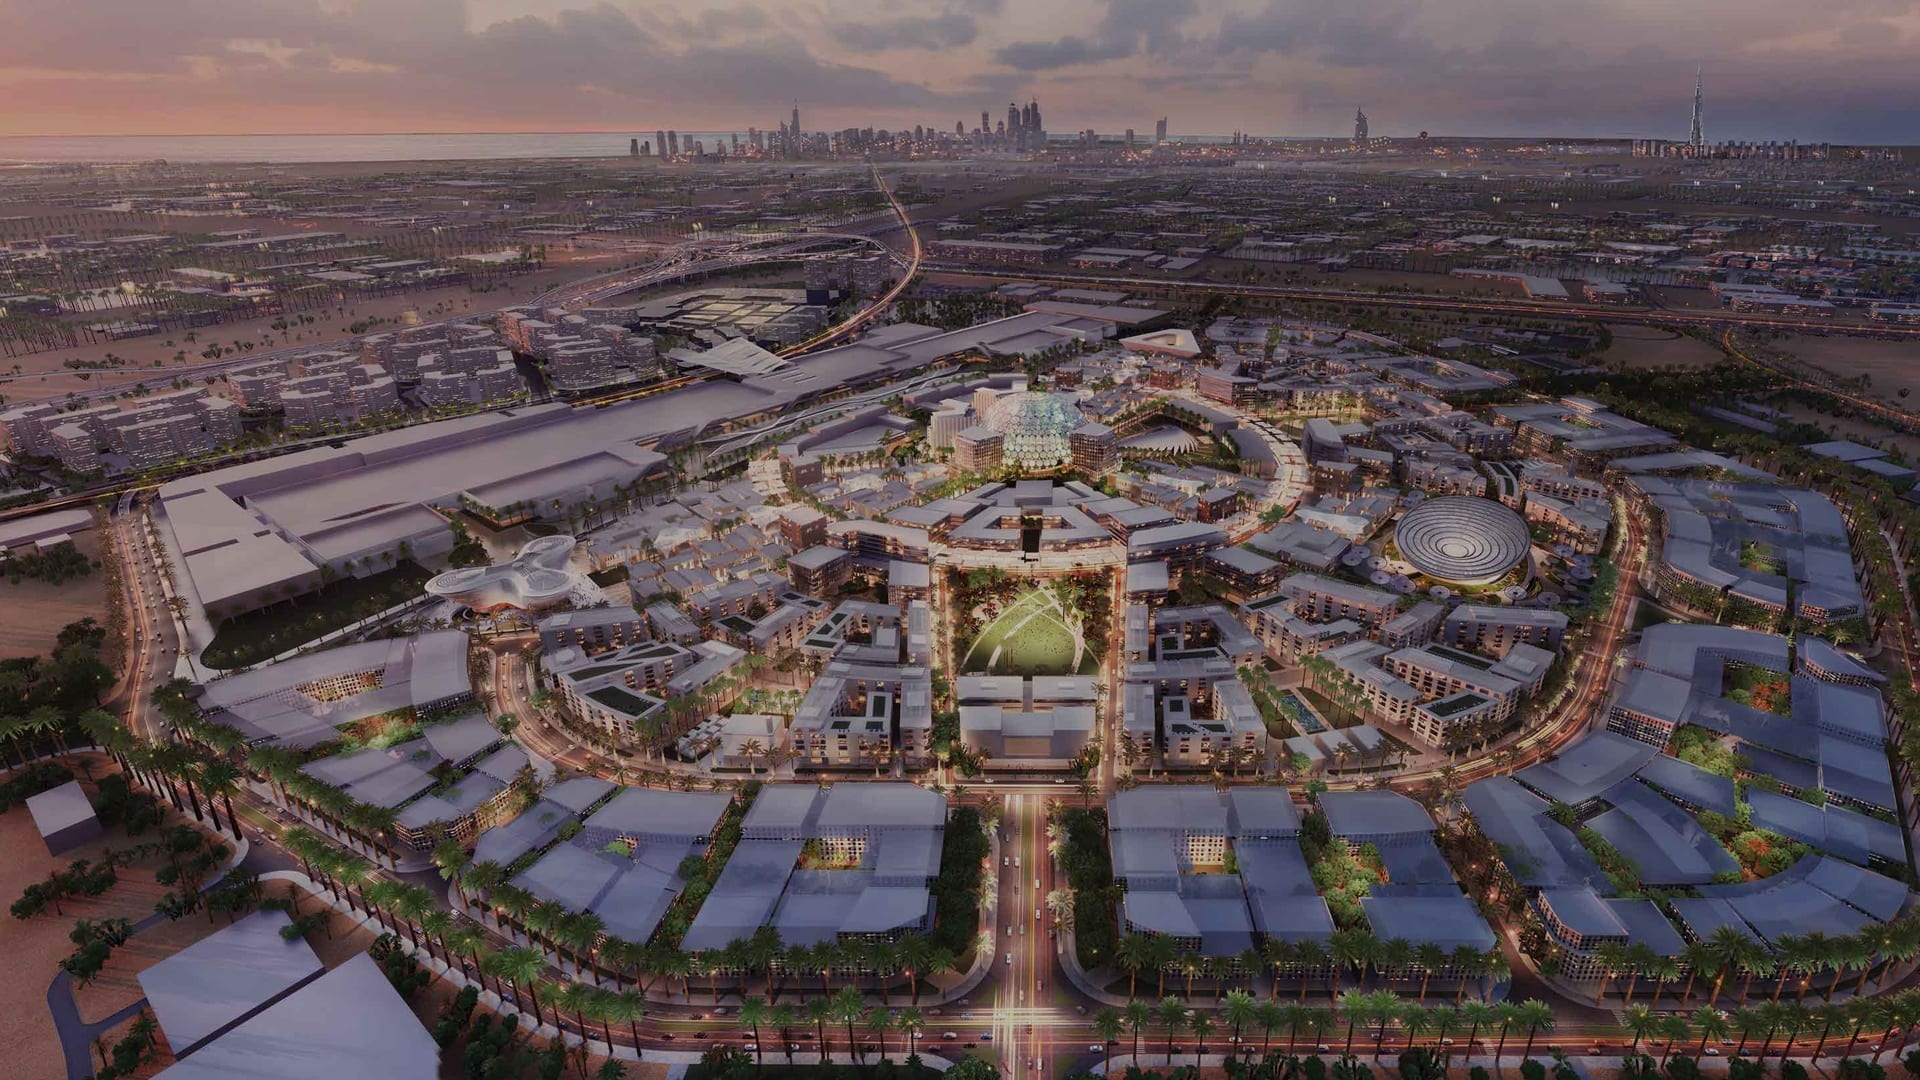 What are the effects of Dubai Expo 2020 on real estate market of UAE?